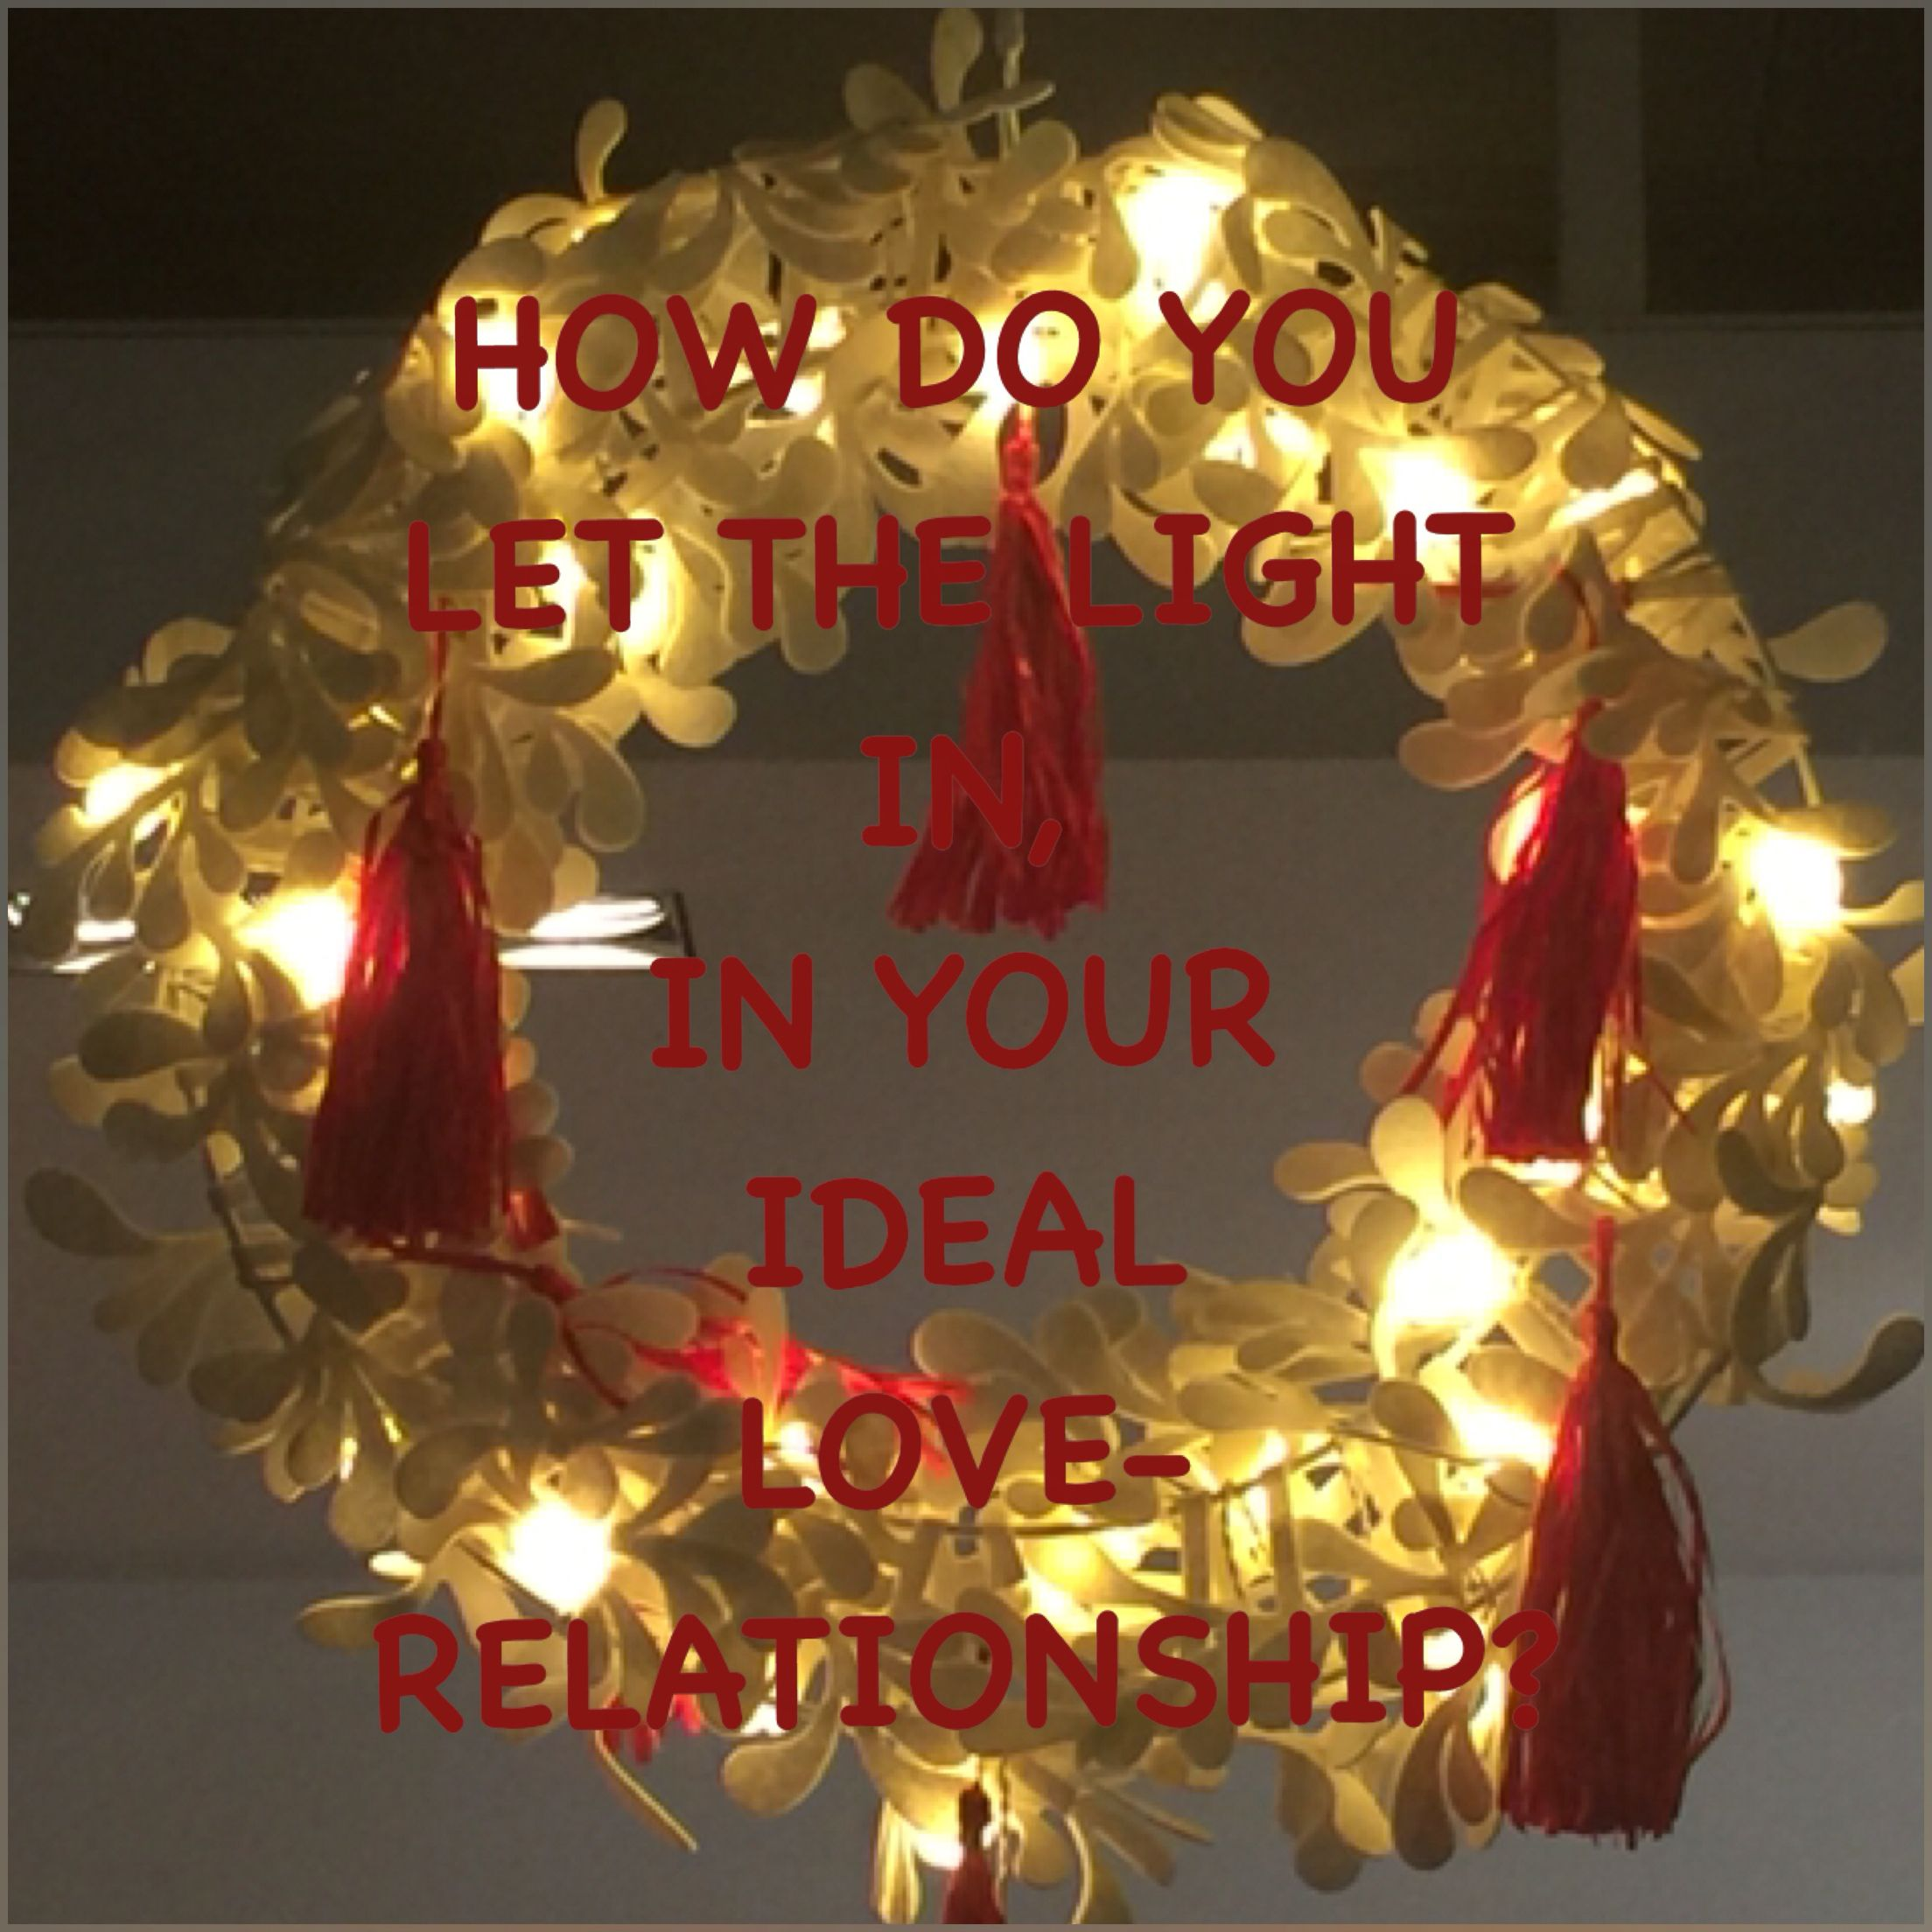 What is your way of letting the light come into your Ideal Love-Relationship? Love and light Shantiom Mumtaz Mahal